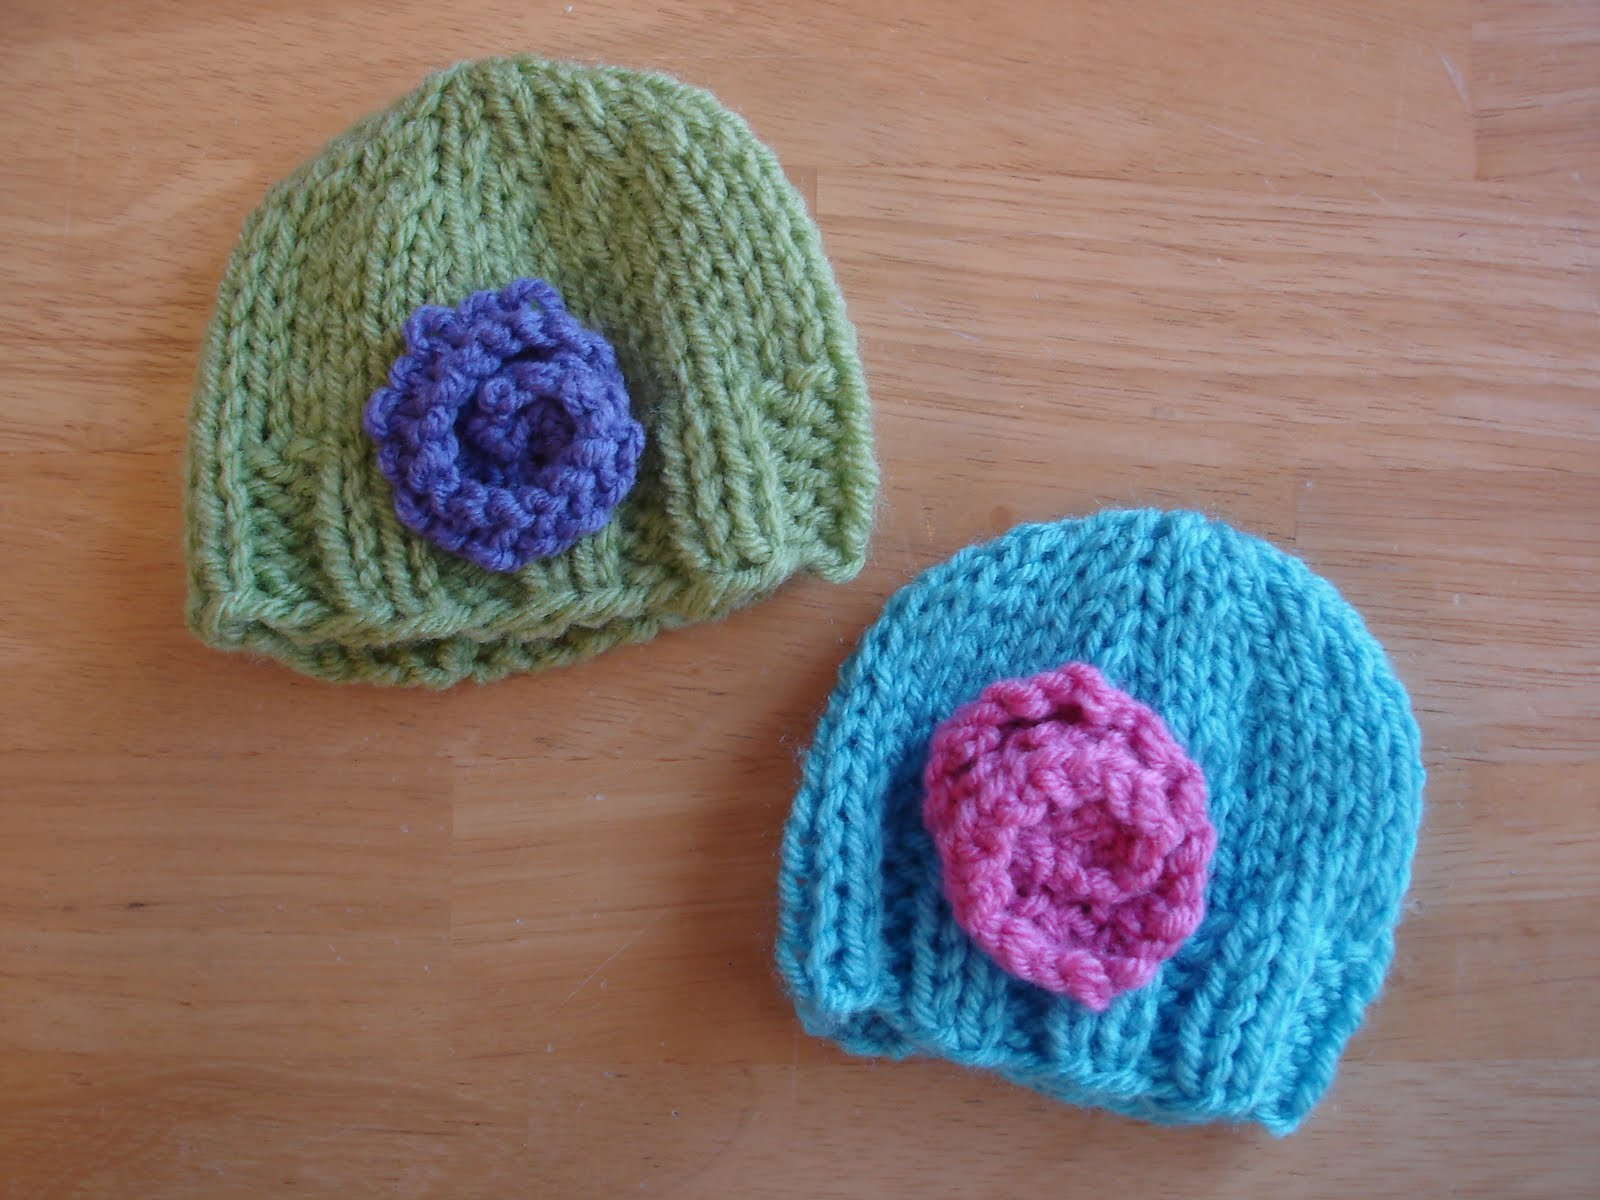 Free Baby Hat Knitting Patterns : Fiber Flux: Free Knitting Pattern...Baby Doll Hats!